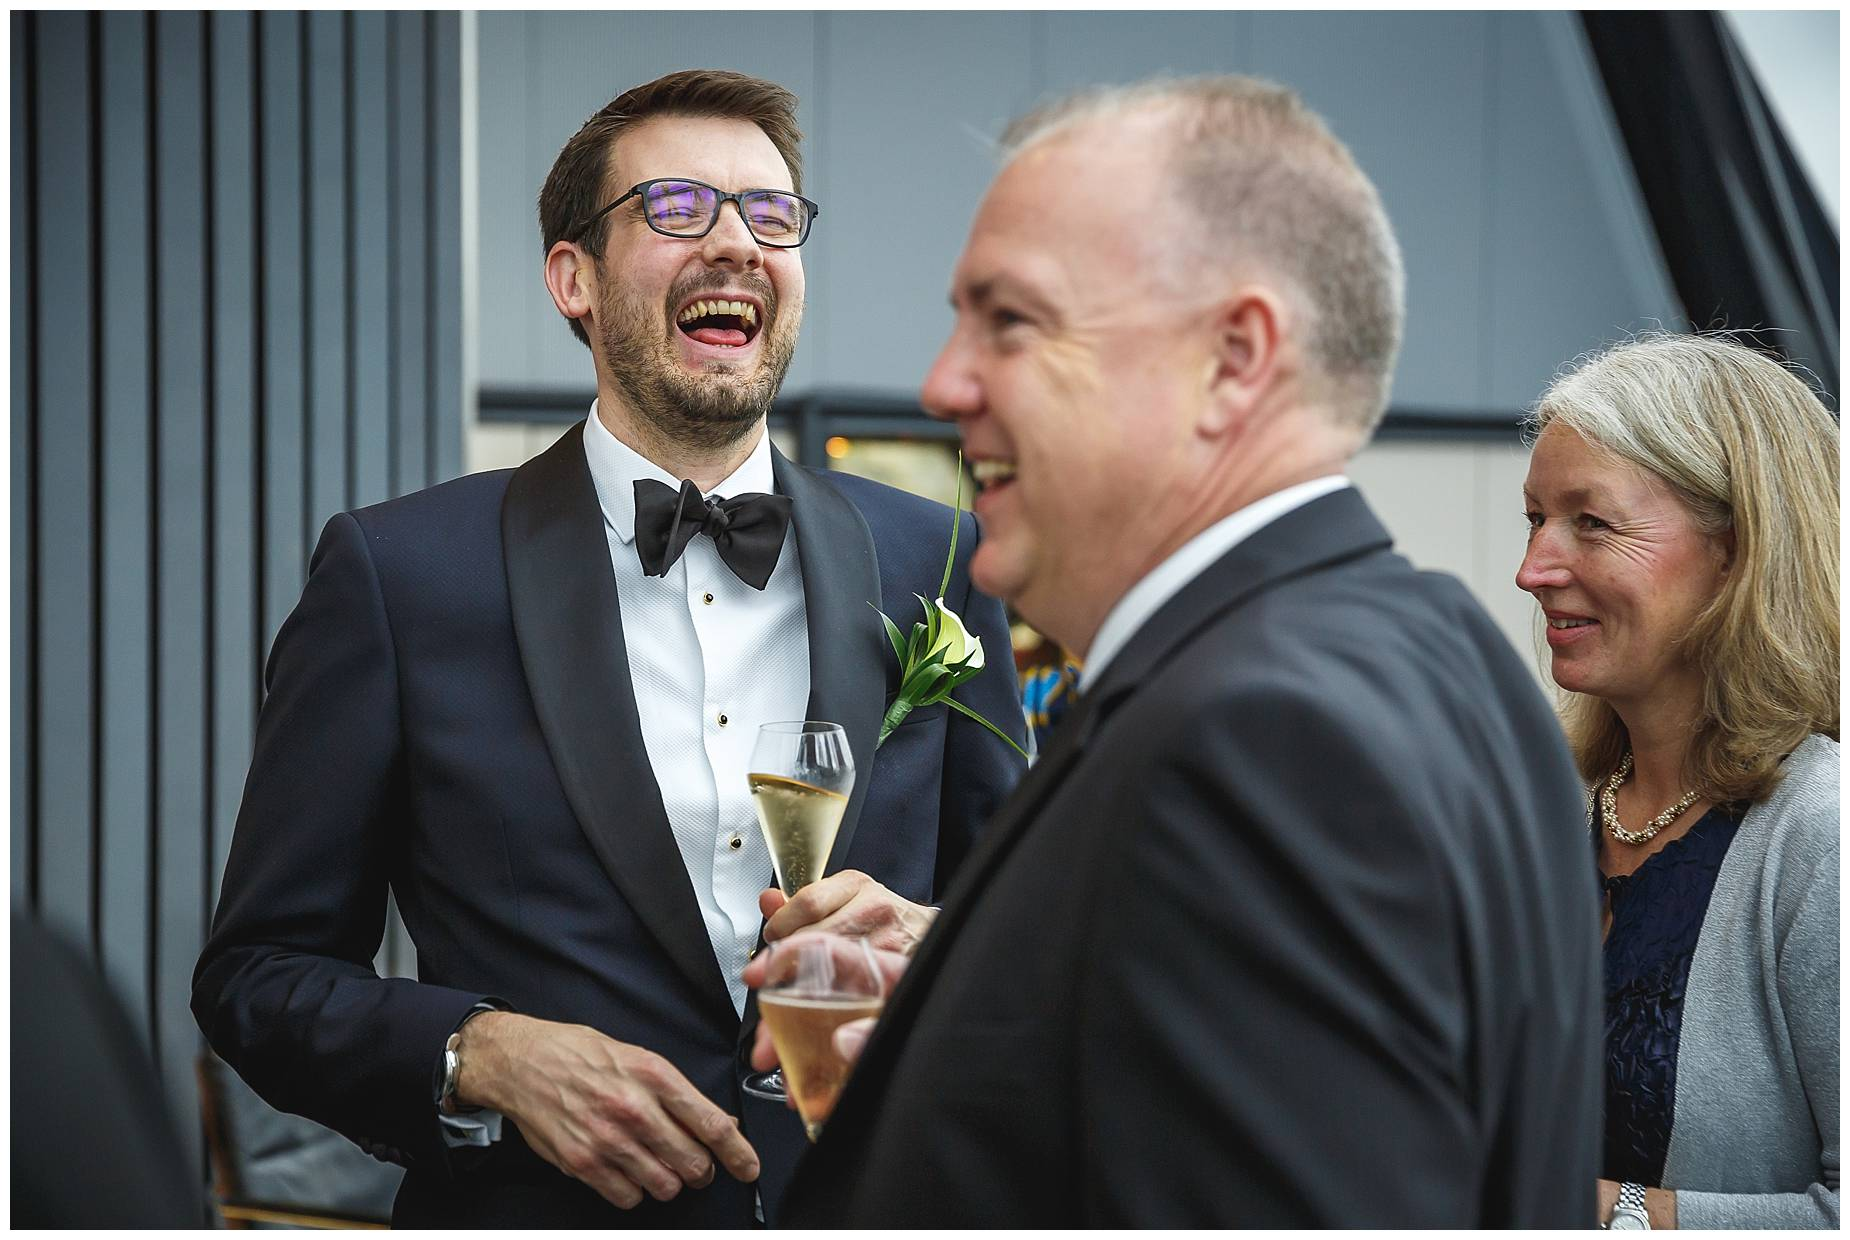 groom laughs at the gherkin